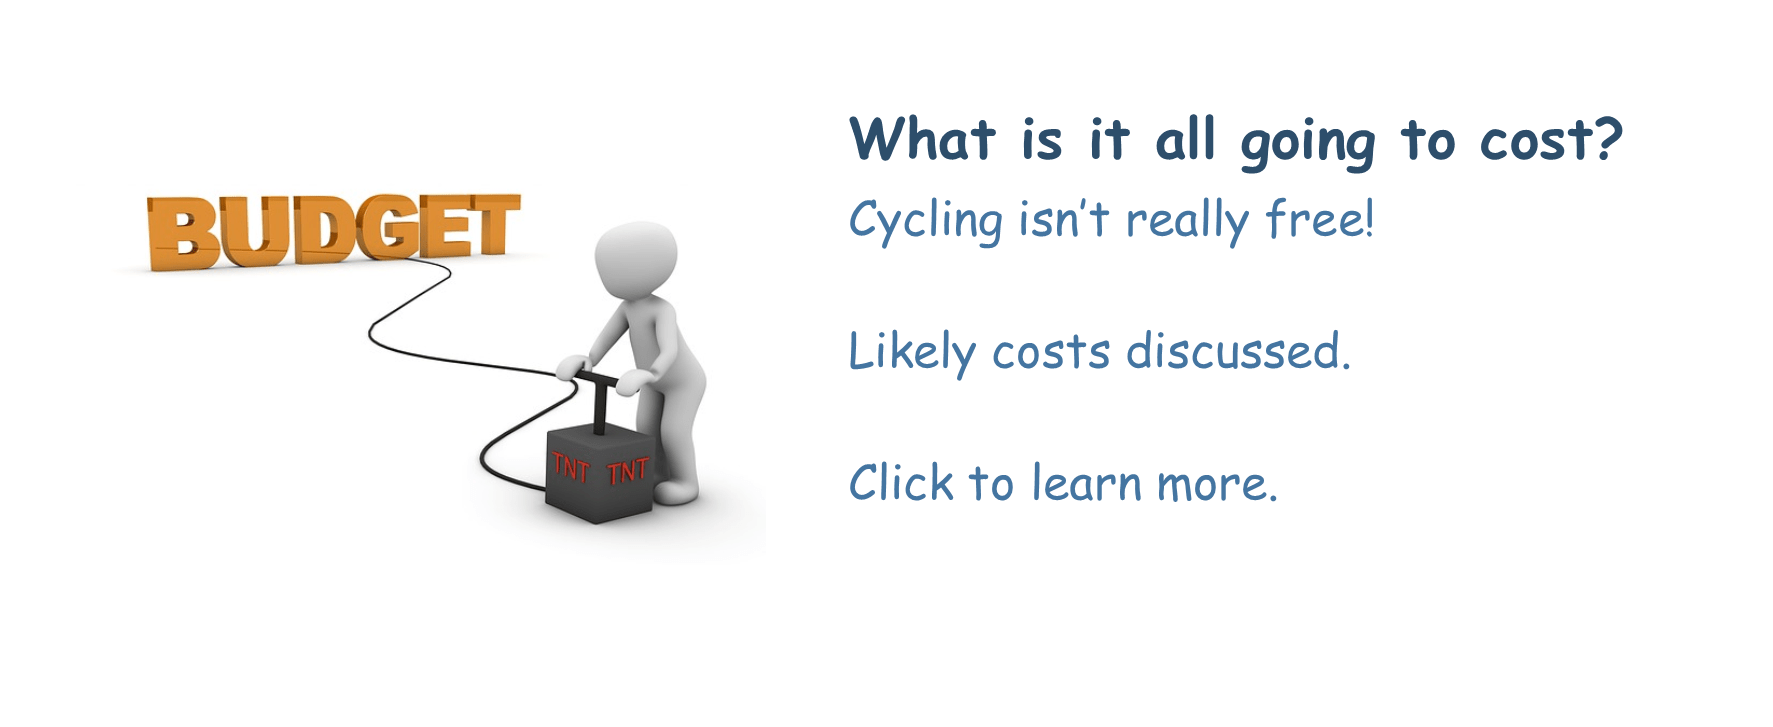 Lands End to John O'Groats Cycle Route Guide Slider Image 9 - How much will it cost